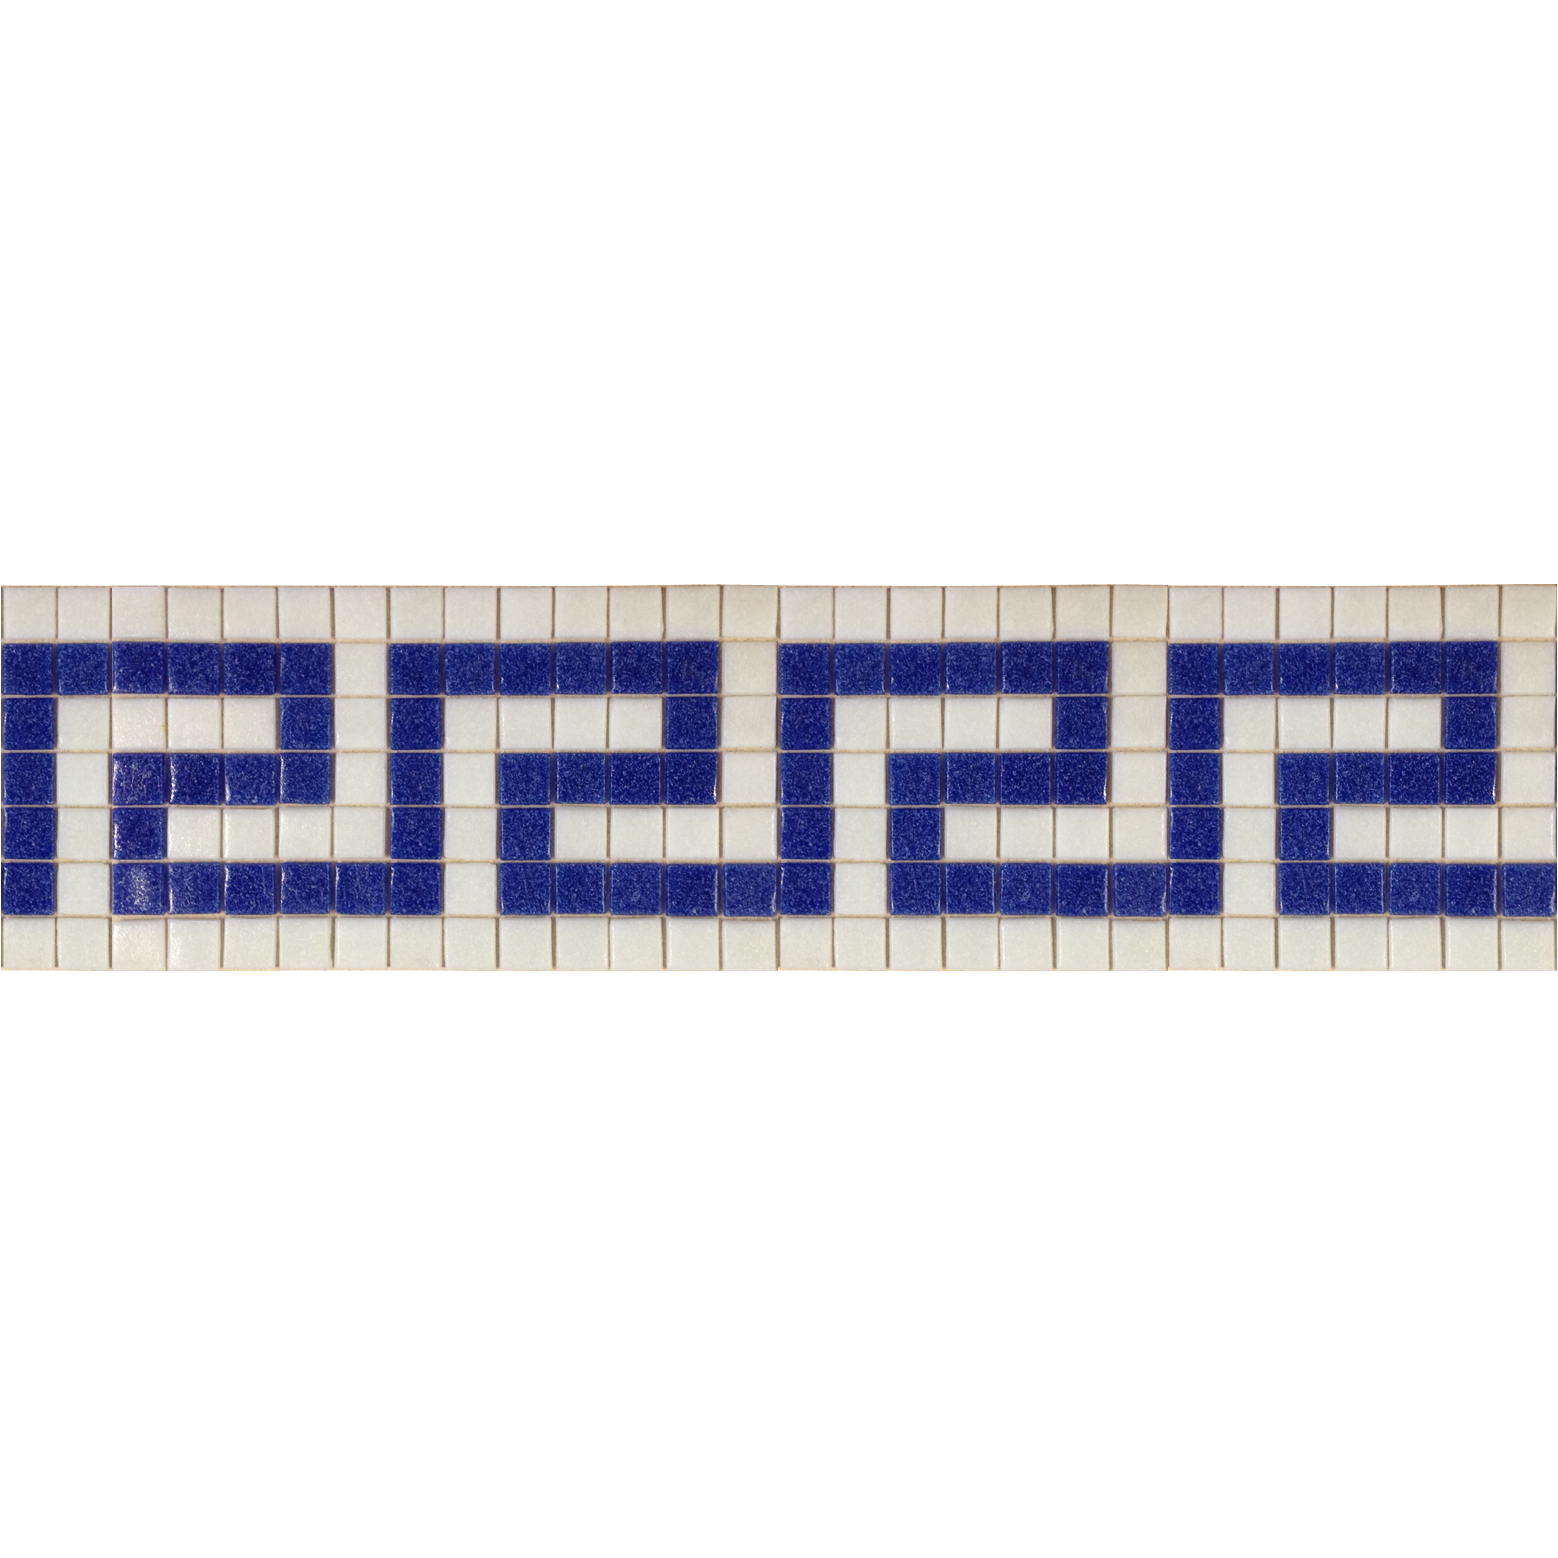 "Greek Key 6 Glass Mosaic Waterline or Border 5.5"" High, 1 Lineal Foot"